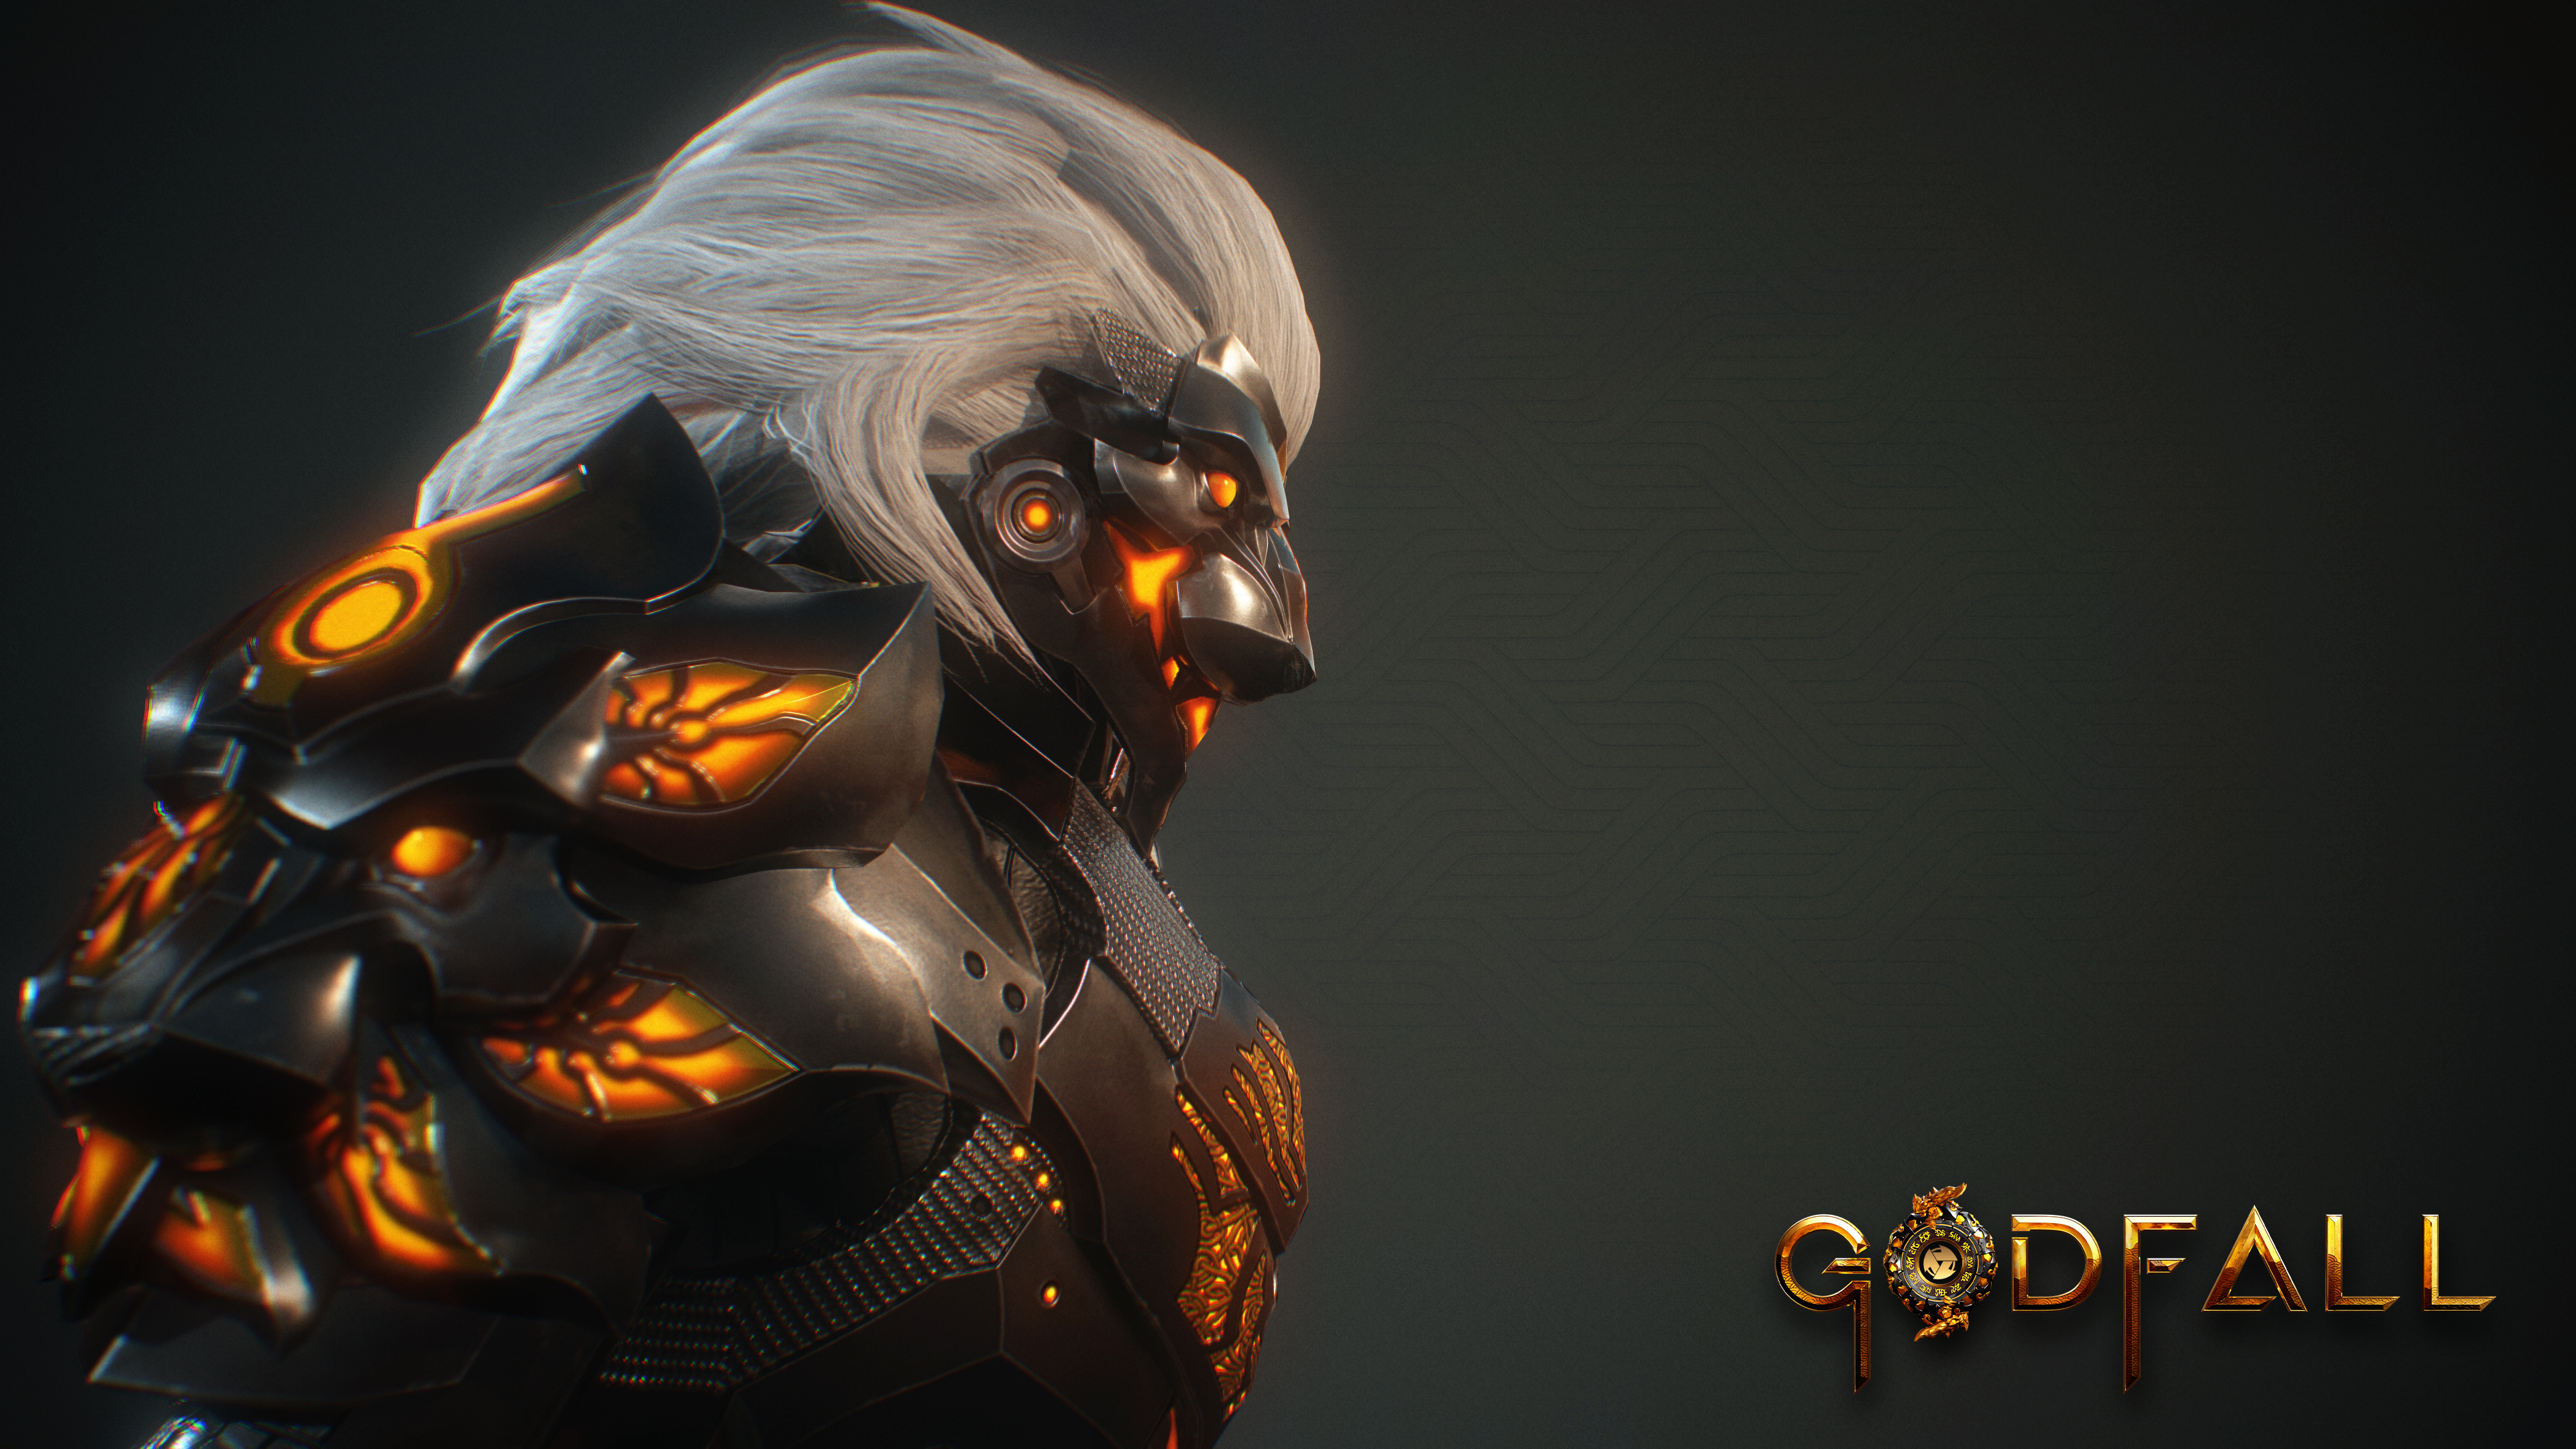 Godfall Ps5 4k Wallpapers Show High Resolution Character Models